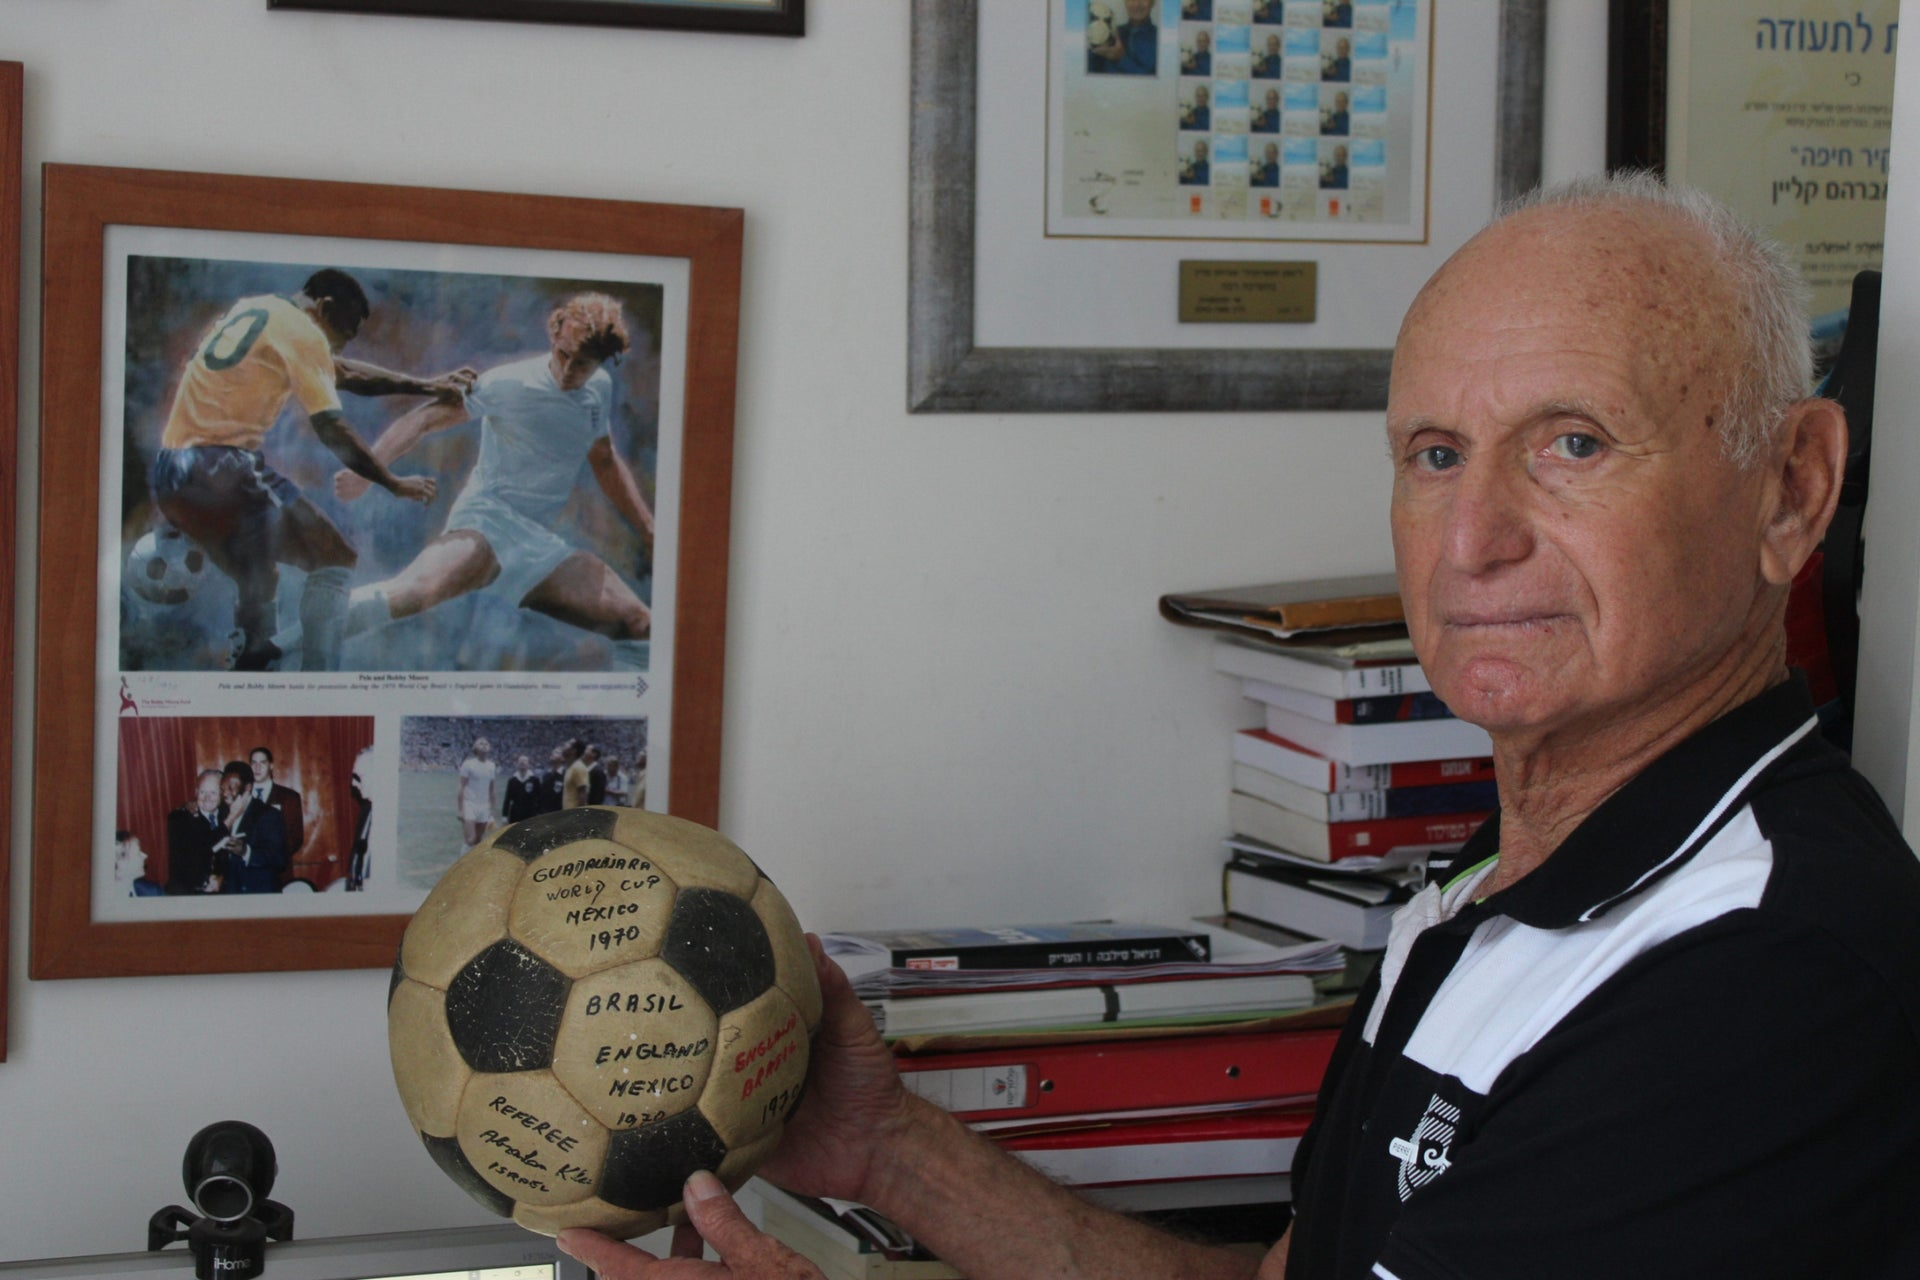 Abraham Klein with a ball from the 1970 World Cup in Mexico, Haifa, March 2016.